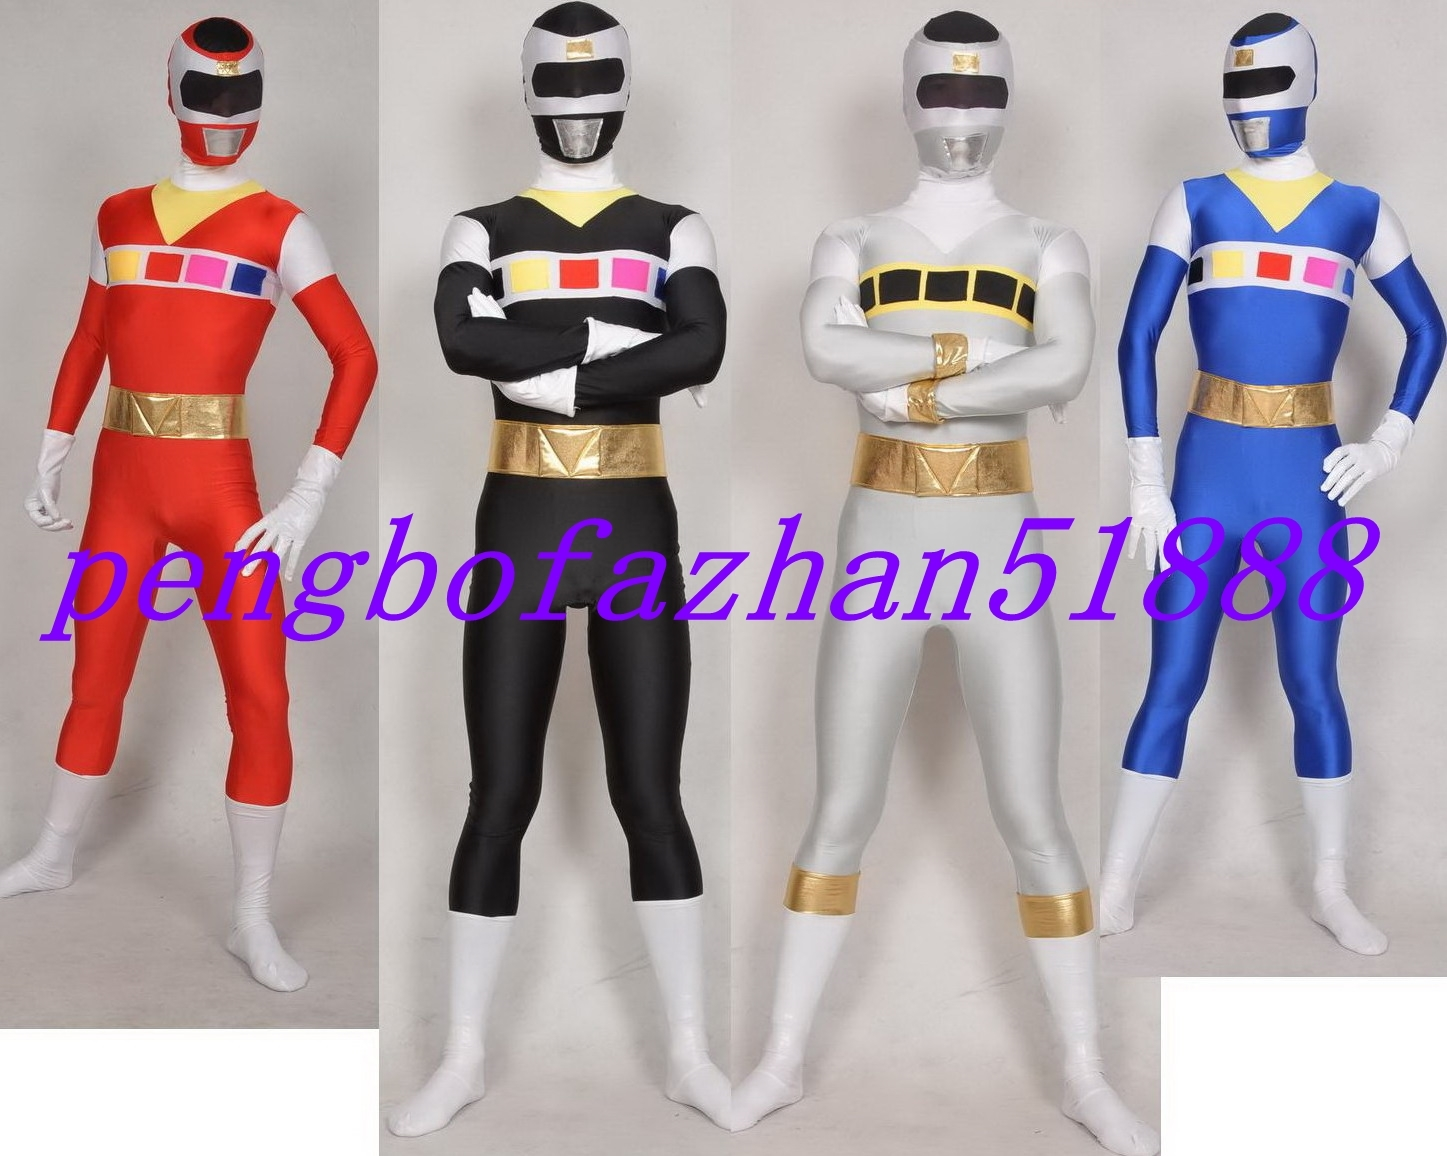 HALLOWEEN COSPLAY SUIT AMAZING POWER RANGER SUIT CATSUIT COSTUMES 4 COLOR S569